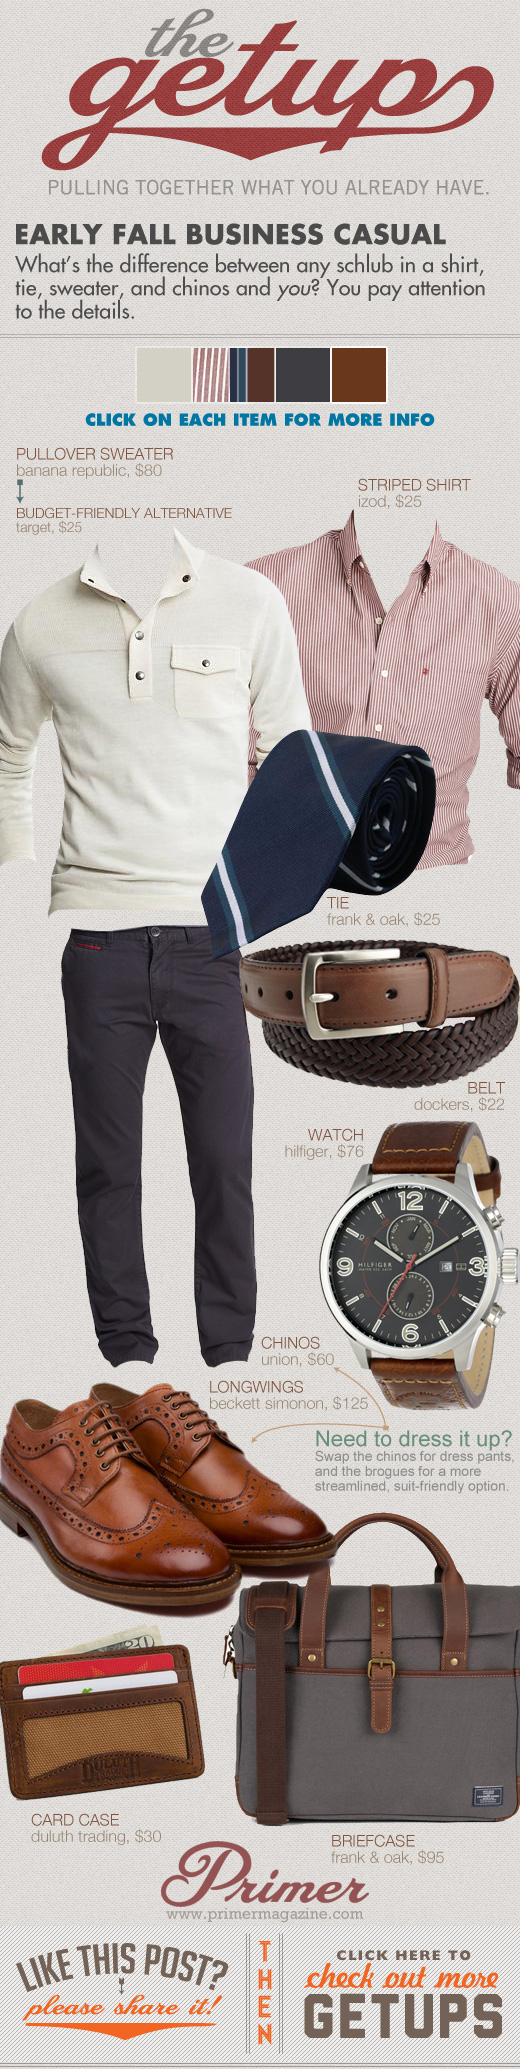 Early Fall Business Casual Getup - white sweater, pink shirt, blue tie, gray pants